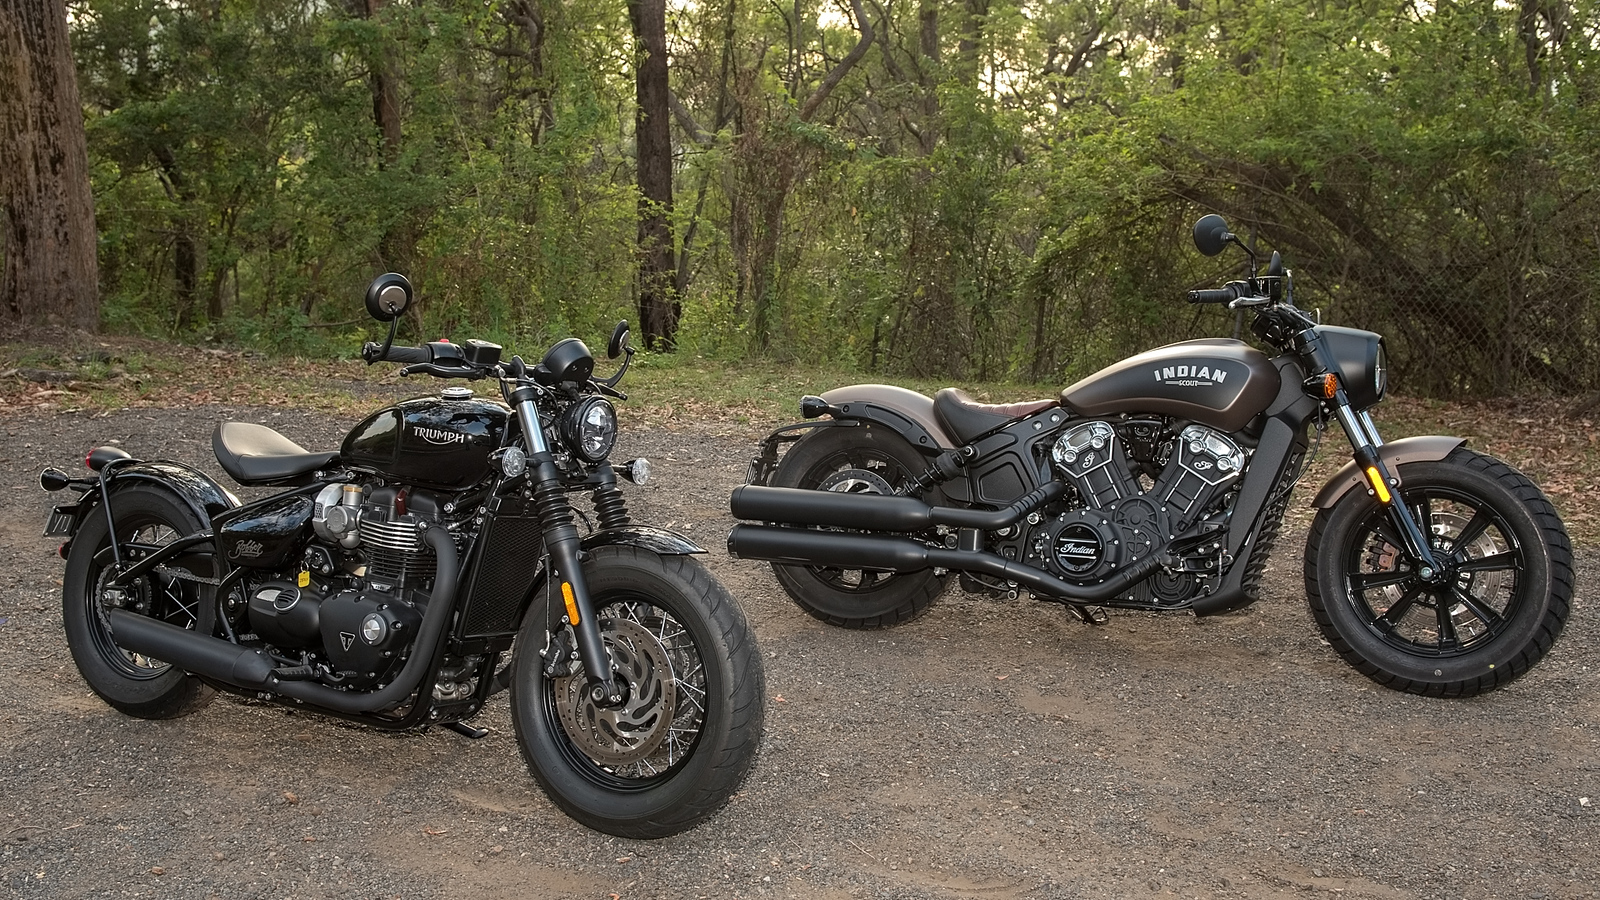 2018 Triumph Bonneville Bobber Black 2018 Indian Scout Bobber Compared Usa England The Other Royal Wedding National Motorcycle Alliance